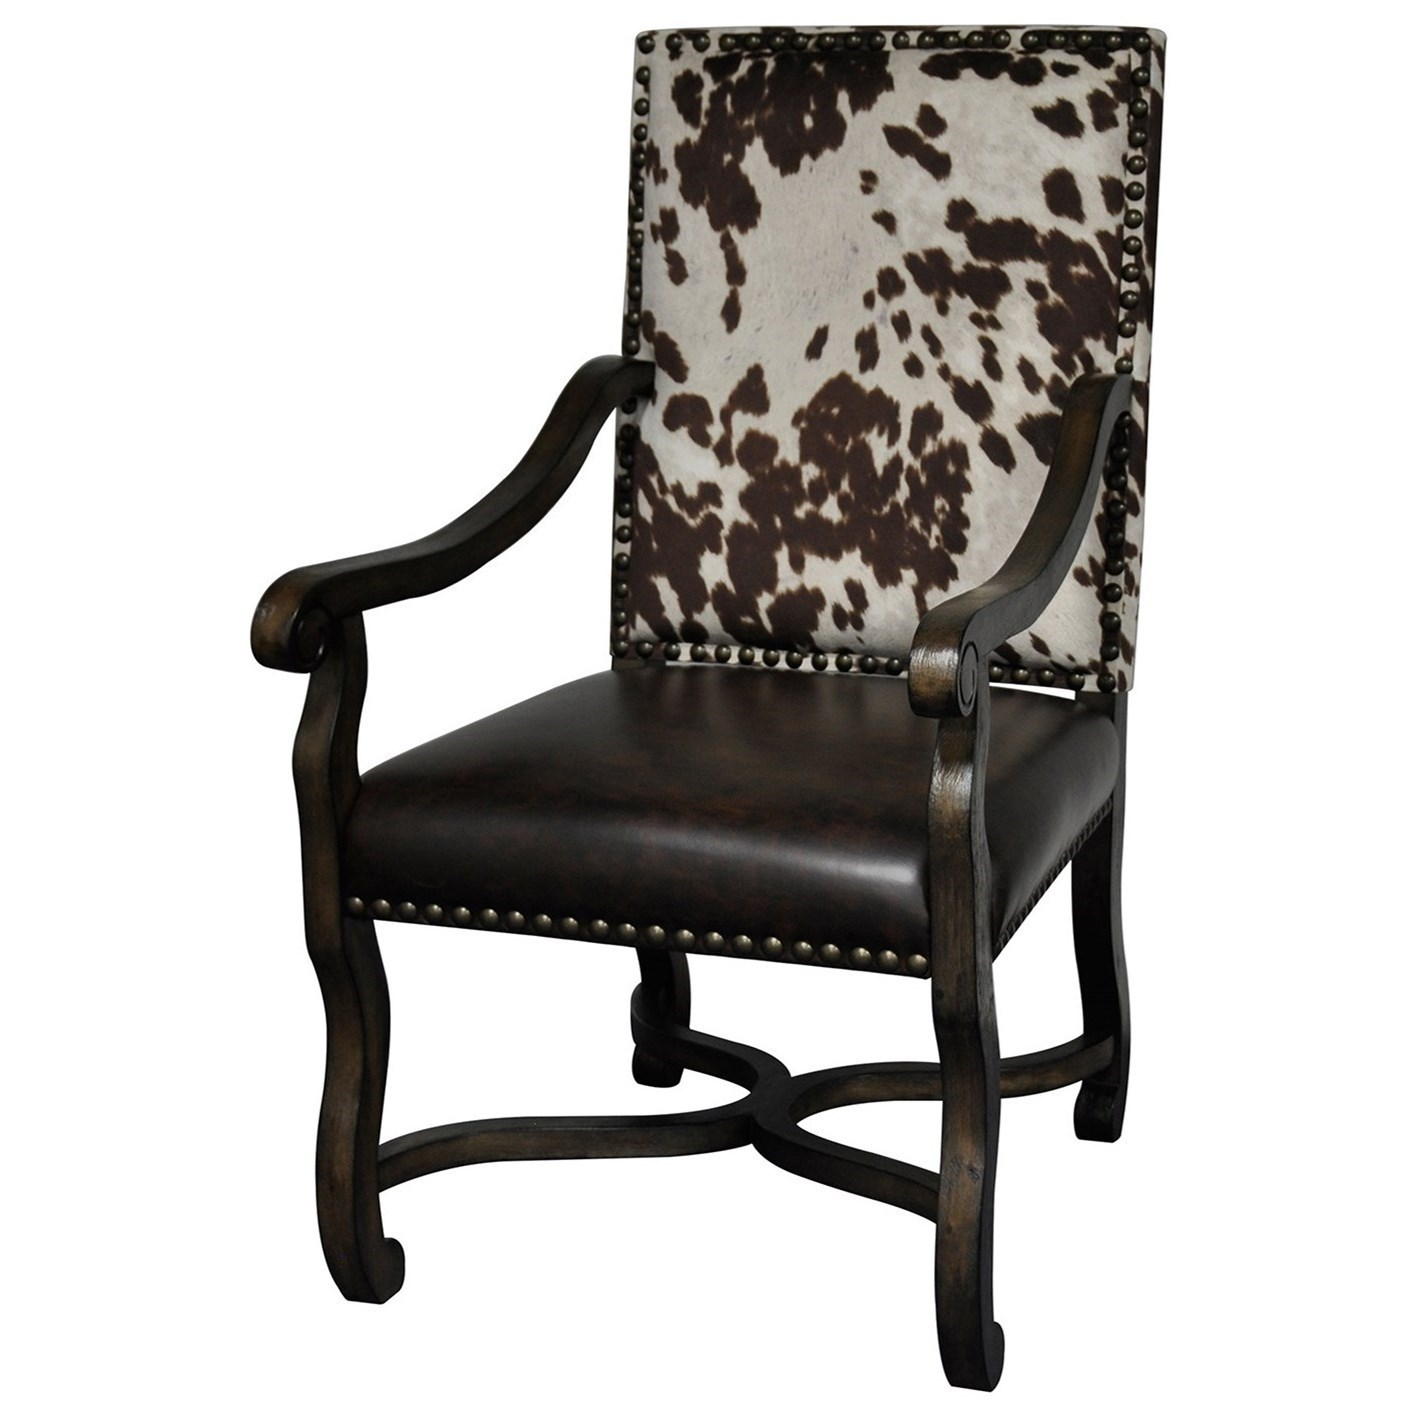 crestview collection accent furniture cvfzr1791 mesquite ranch rh greatamericanhomestore com cowhide chairs modern cowhide chairs australia